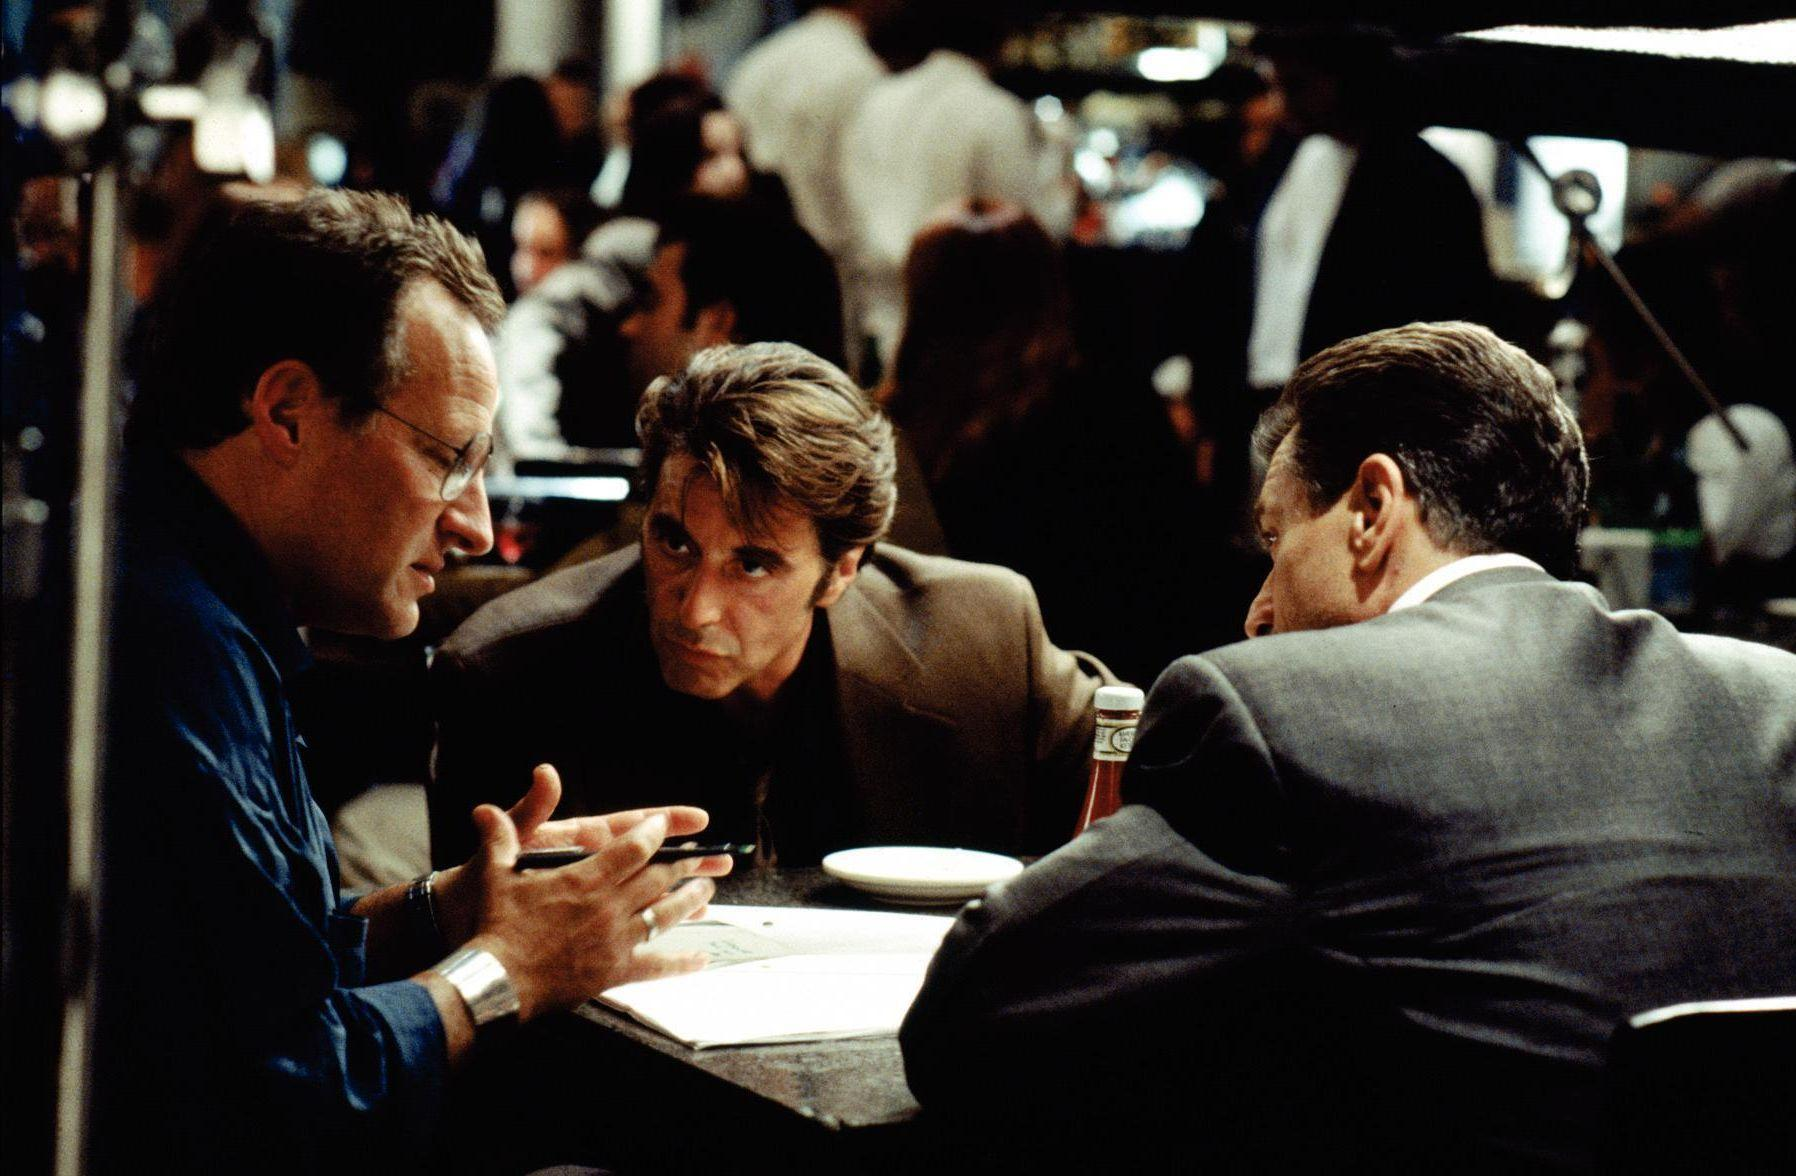 still-of-robert-de-niro-al-pacino-and-michael-mann-in-heat-1995.jpg